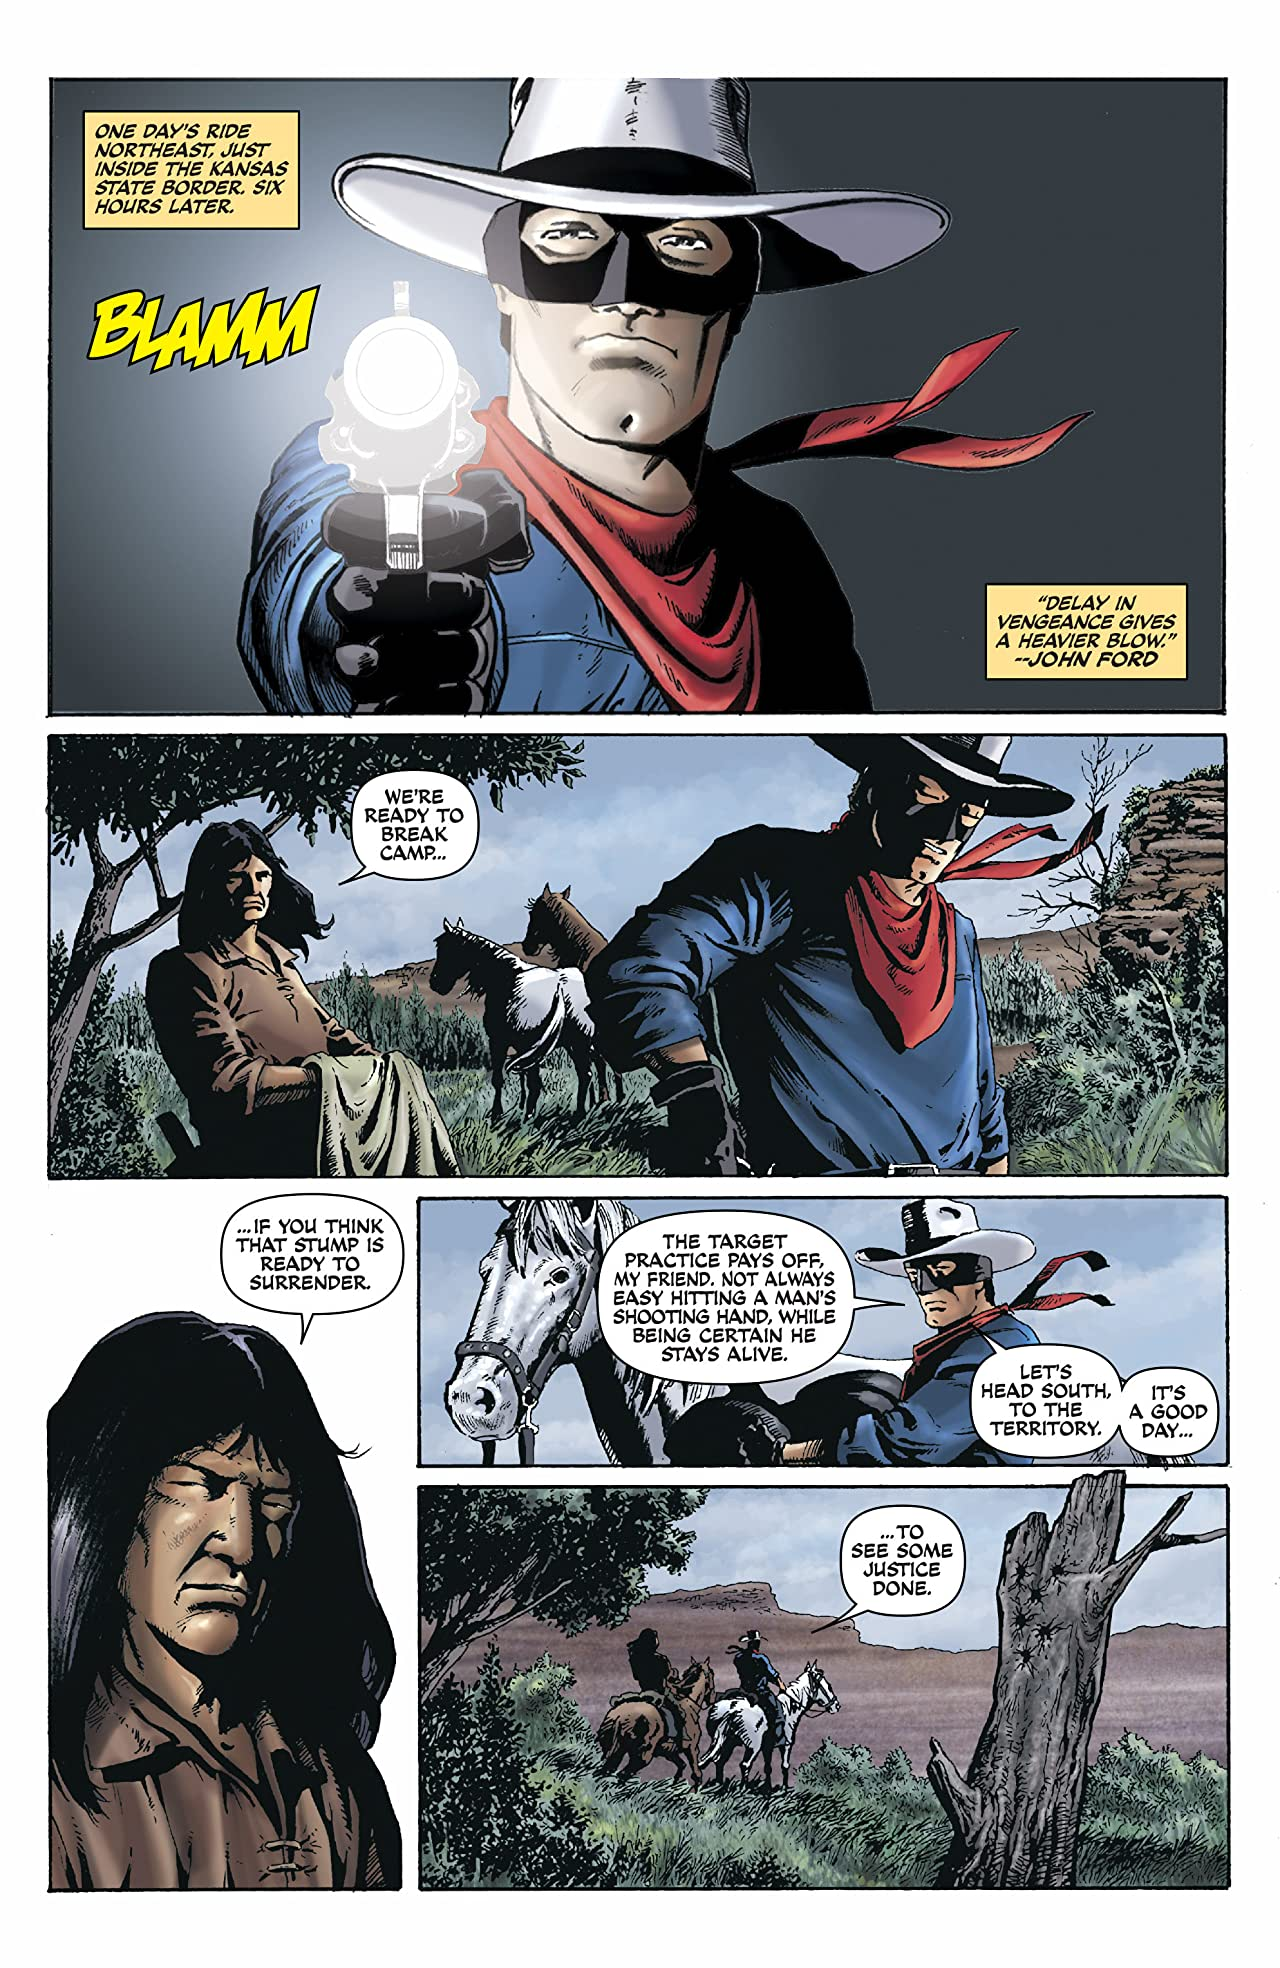 The Lone Ranger Vol. 2 #1